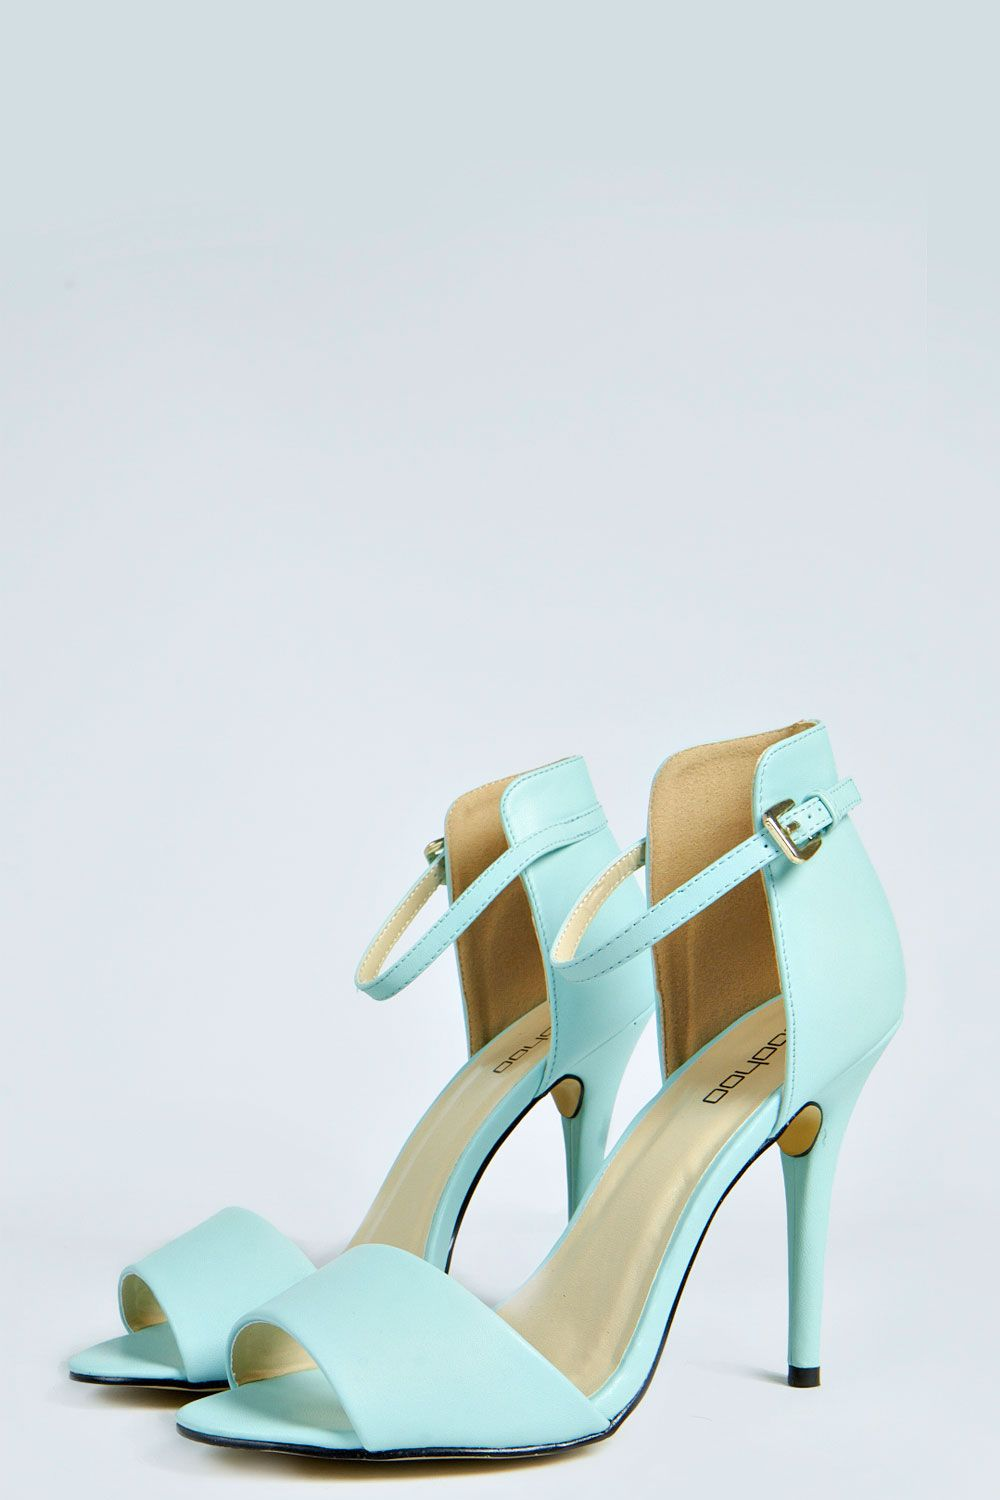 489d11eca3c Scarlett Barely There Pastel Heels Product code  azz34515 - StudentRate   SRtrending